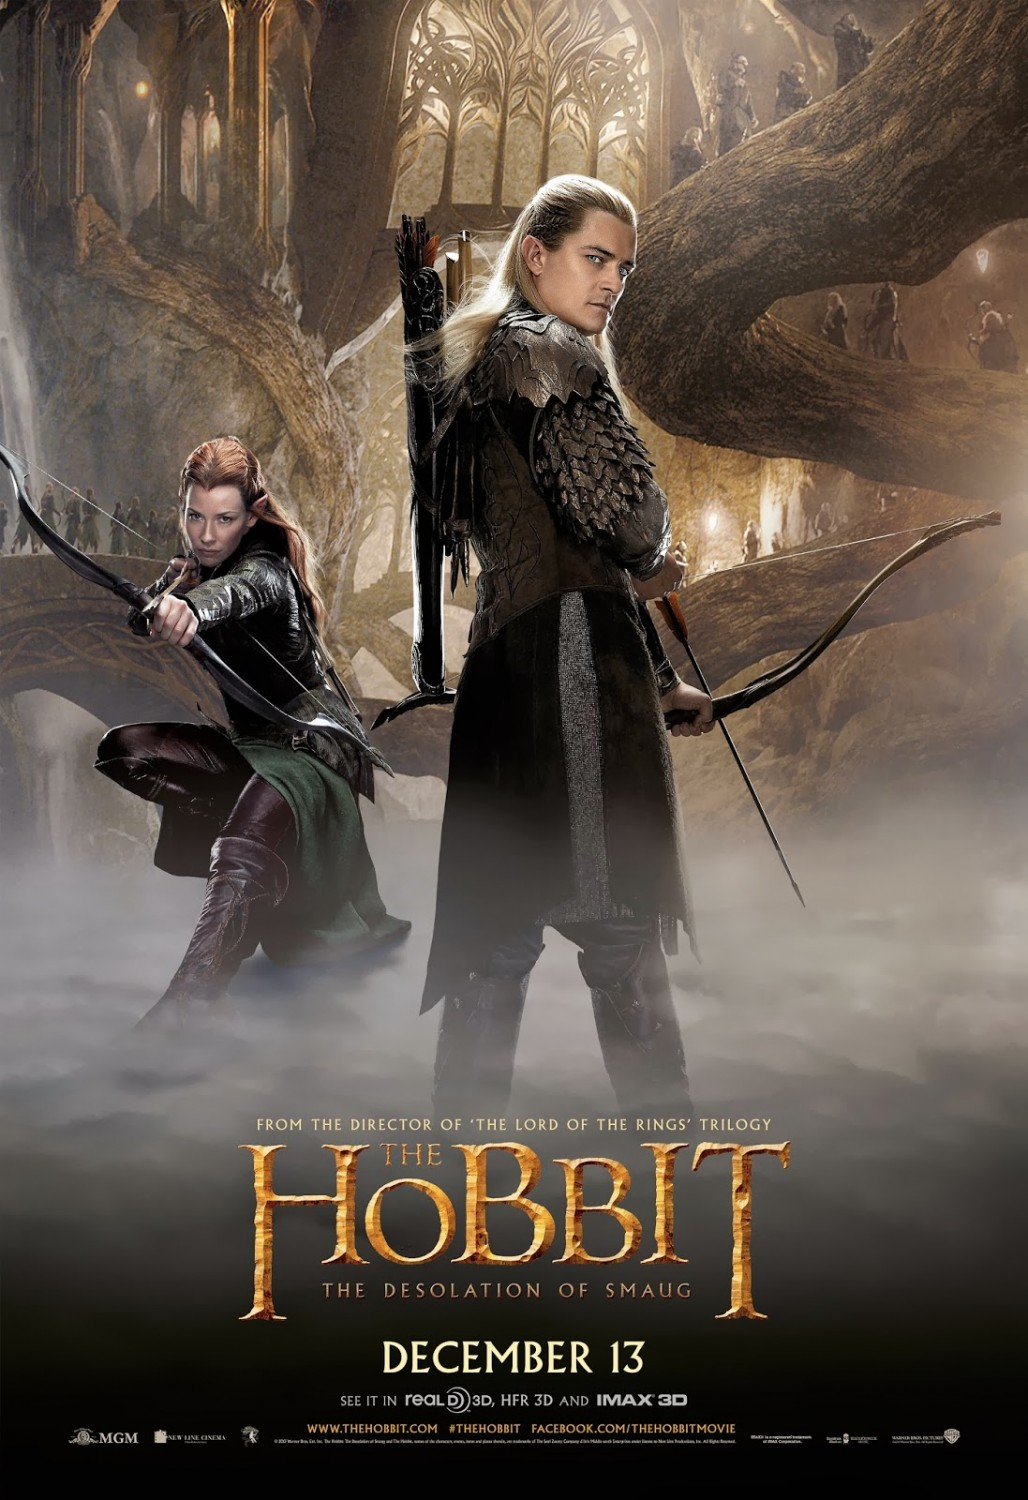 THE HOBBIT THE DESOLATION OF SMAUG-Official Poster Banner PROMO POSTER-07NOVEMBRO2013-05